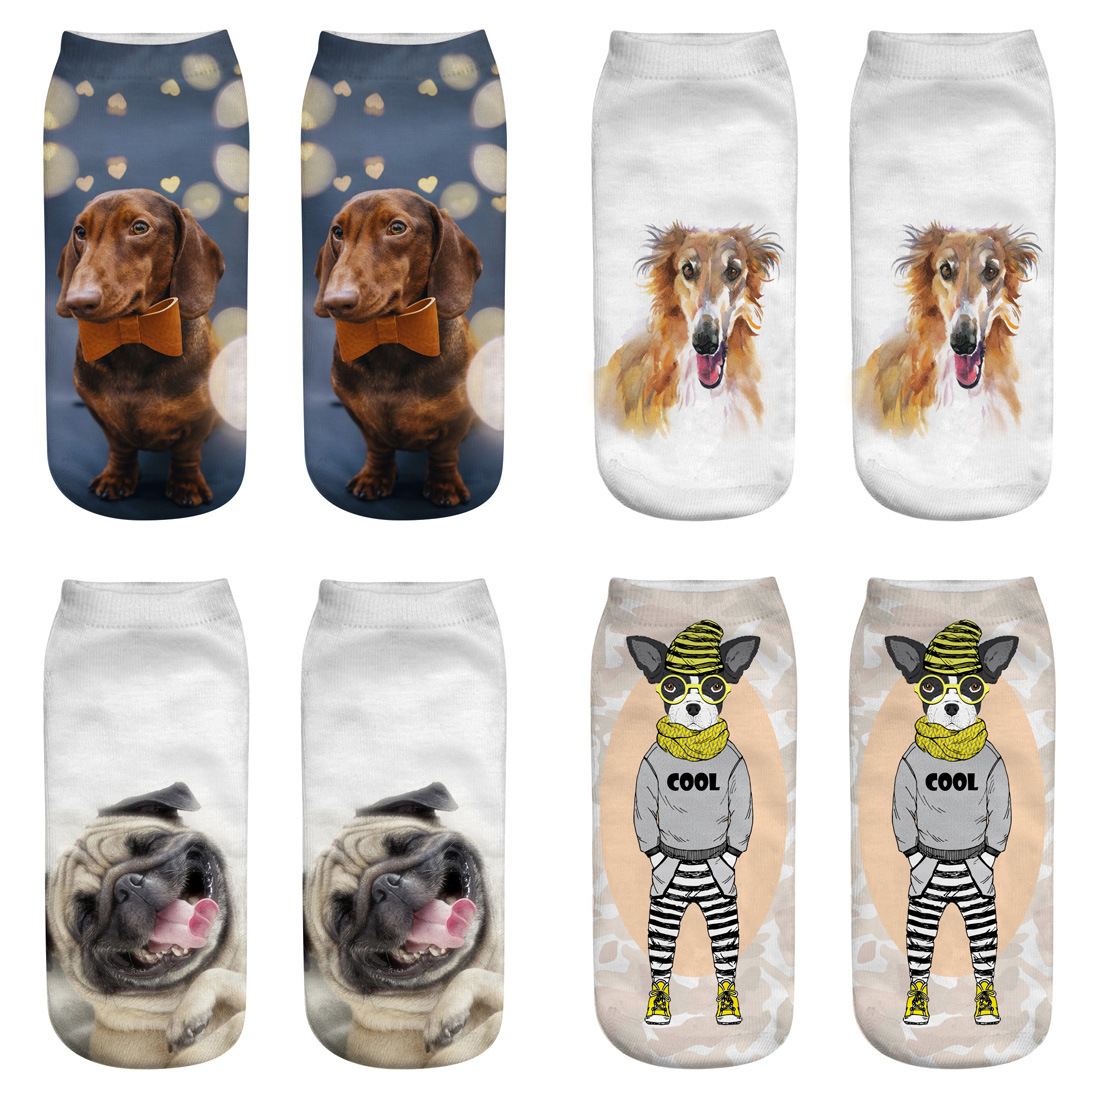 New Cute Socks 1 Pairs 3D Dog Printed Sock New Unisex Low Ankle Sock Soft Printing Socks Casual Animal Printed Dogs Patterns image